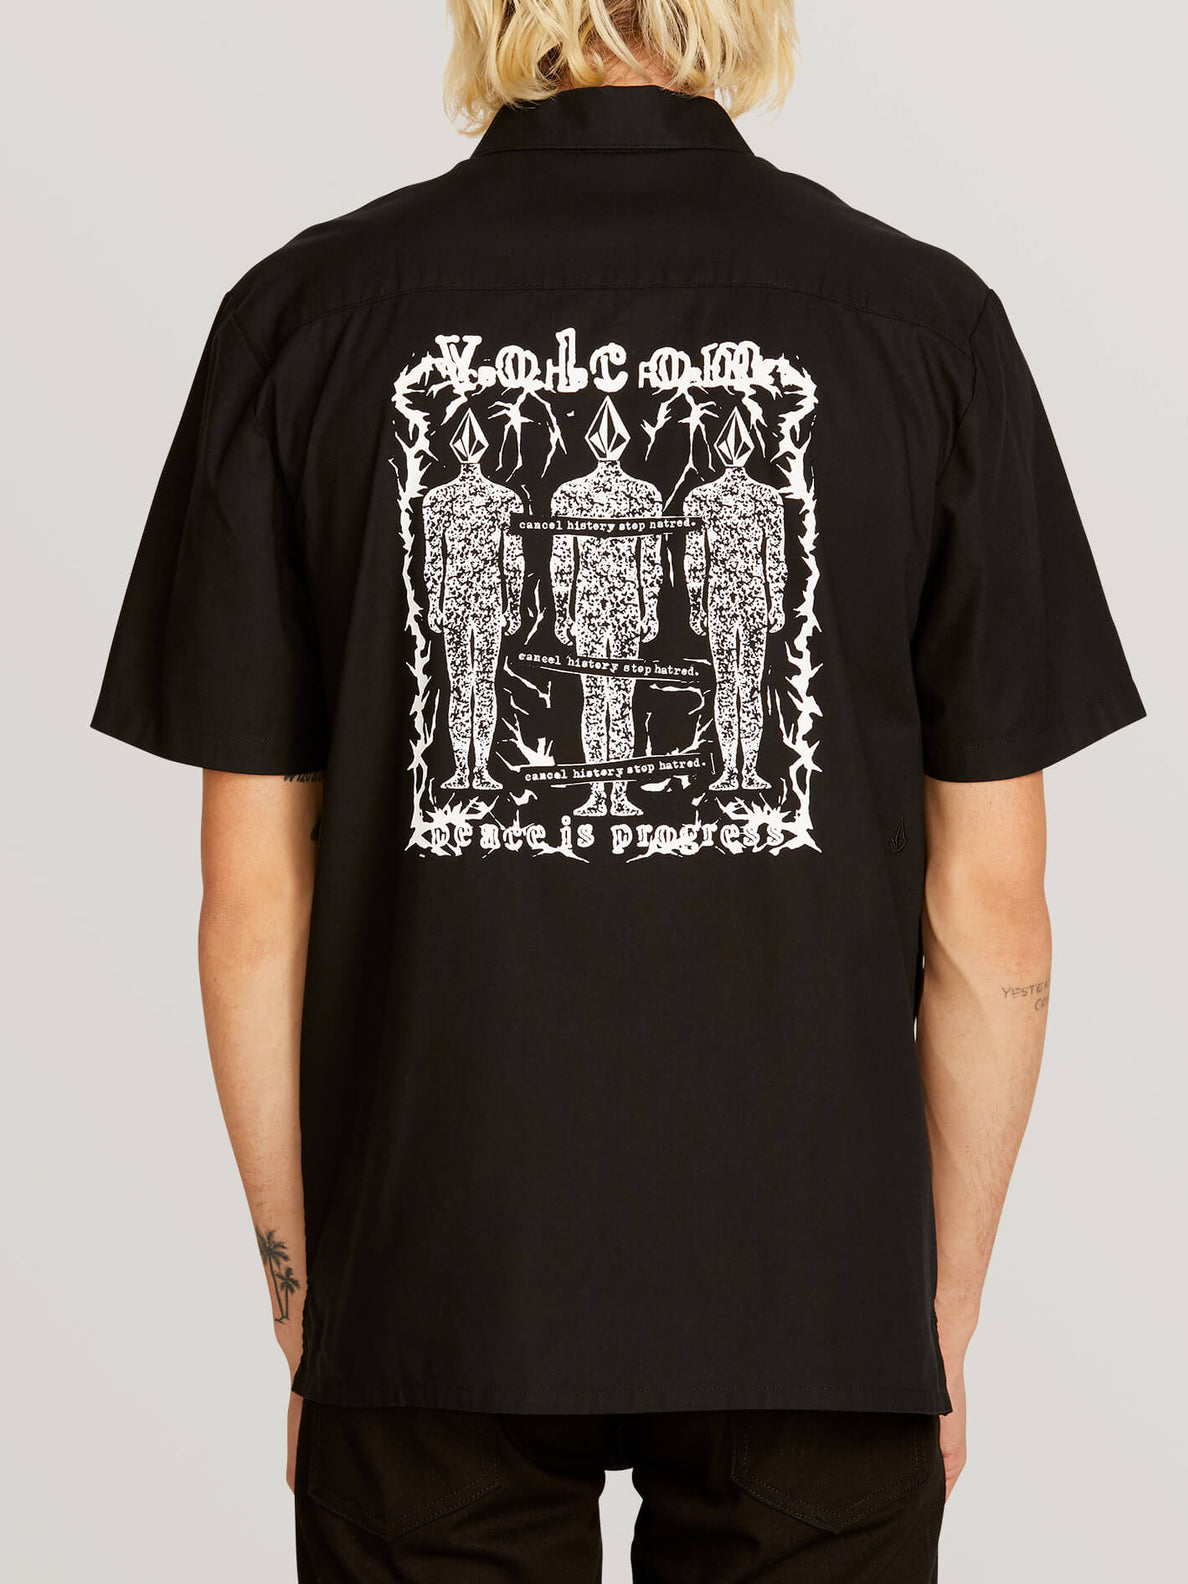 Crowd Control Short Sleeve Shirt In Black, Back View